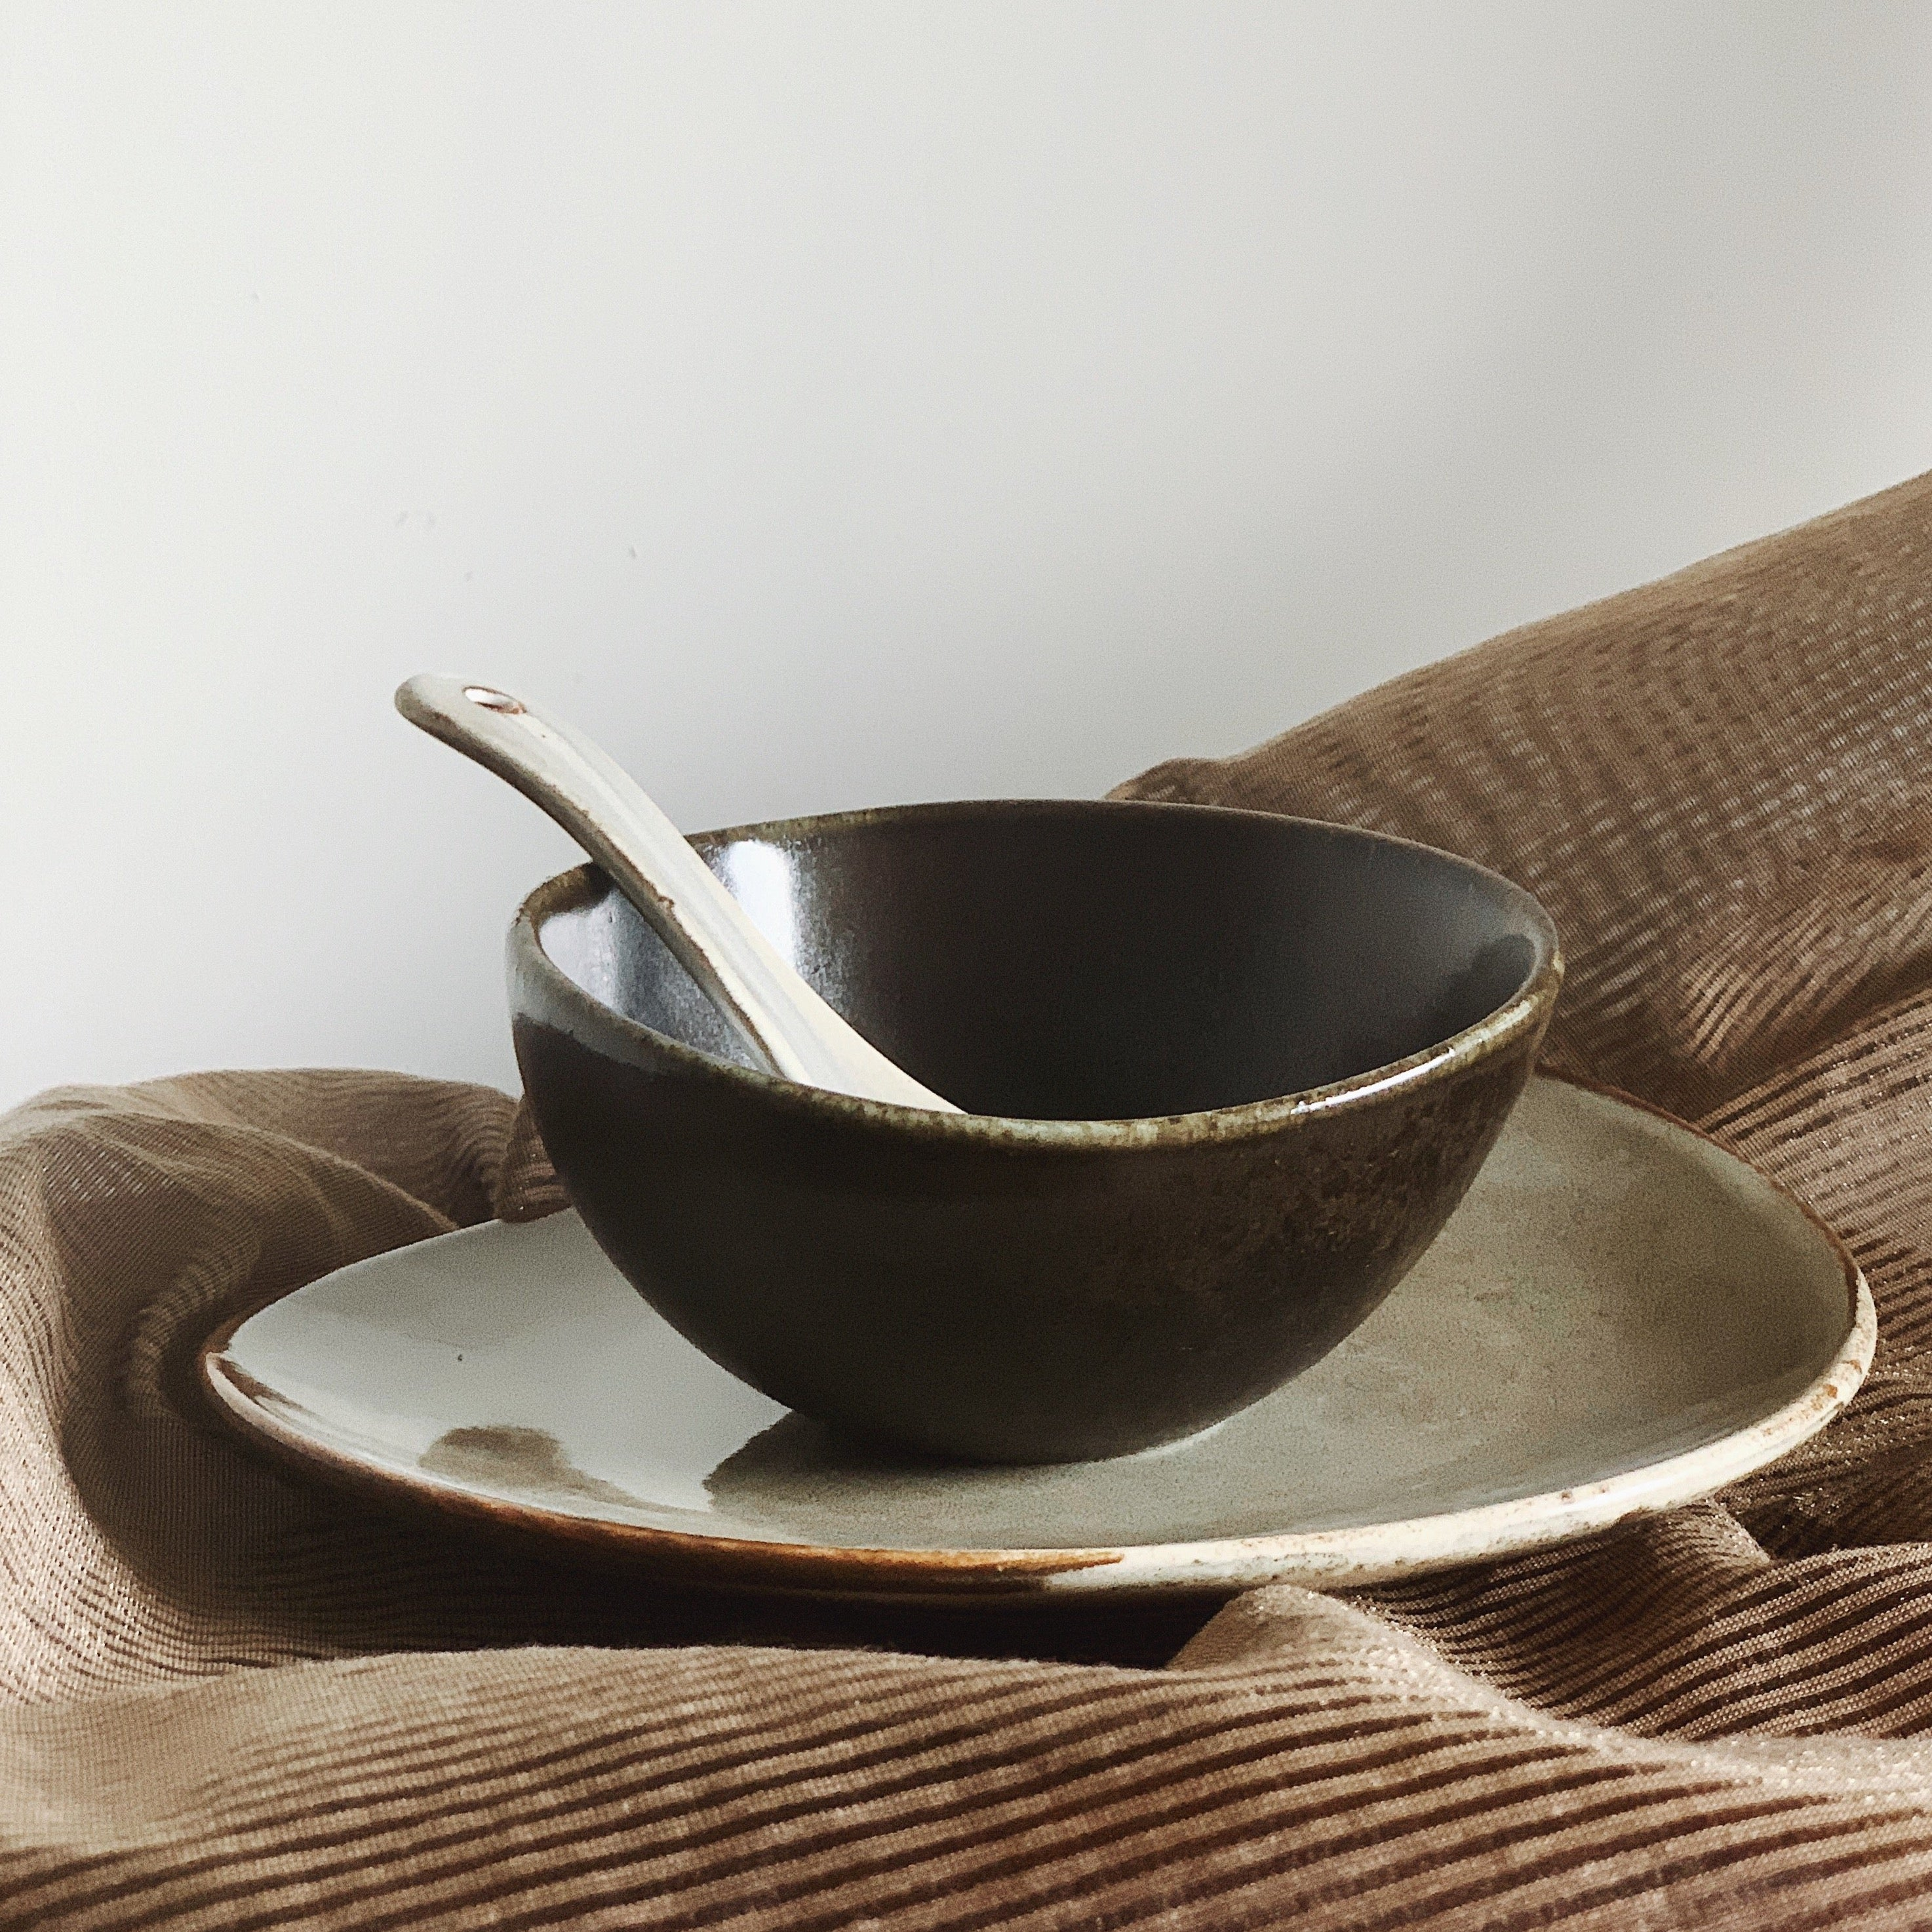 natón dinnerware essential set with grey serving plate, black rice bowl and grey soup spoon